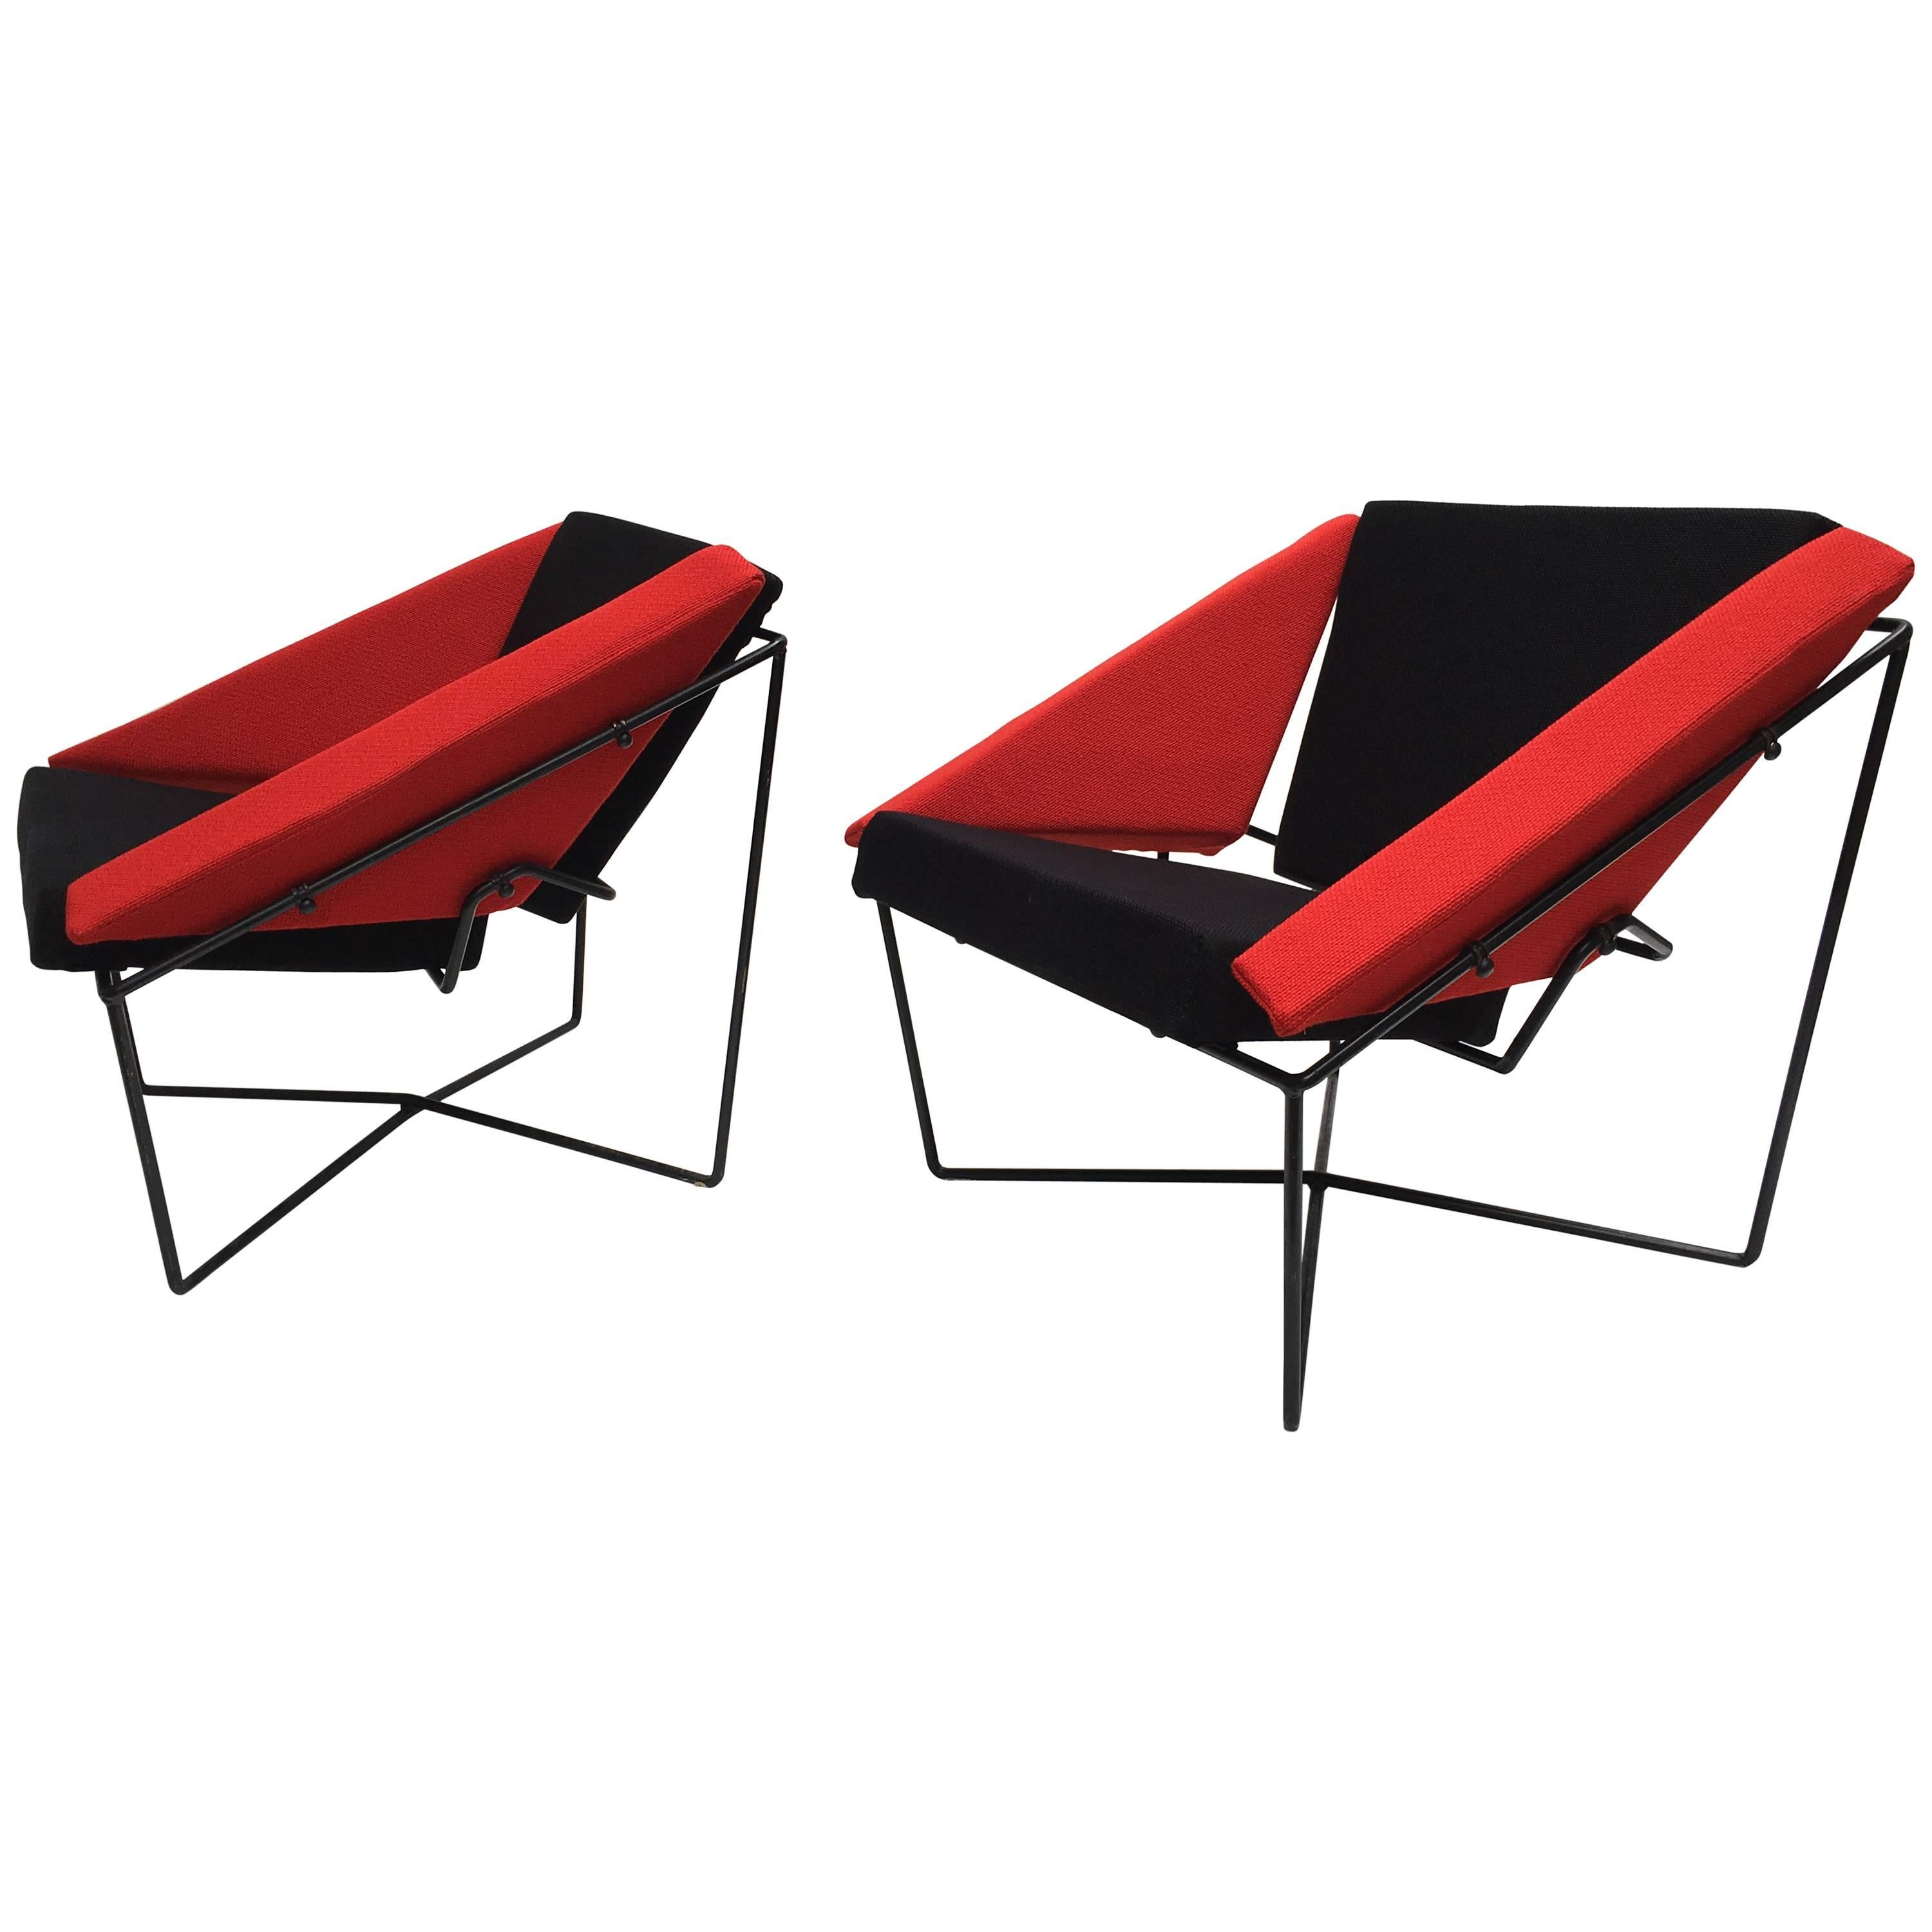 """Rare Pair of """"Van Speyk"""" Easy Chairs by Rob Eckhardt, the Netherlands, 1984"""